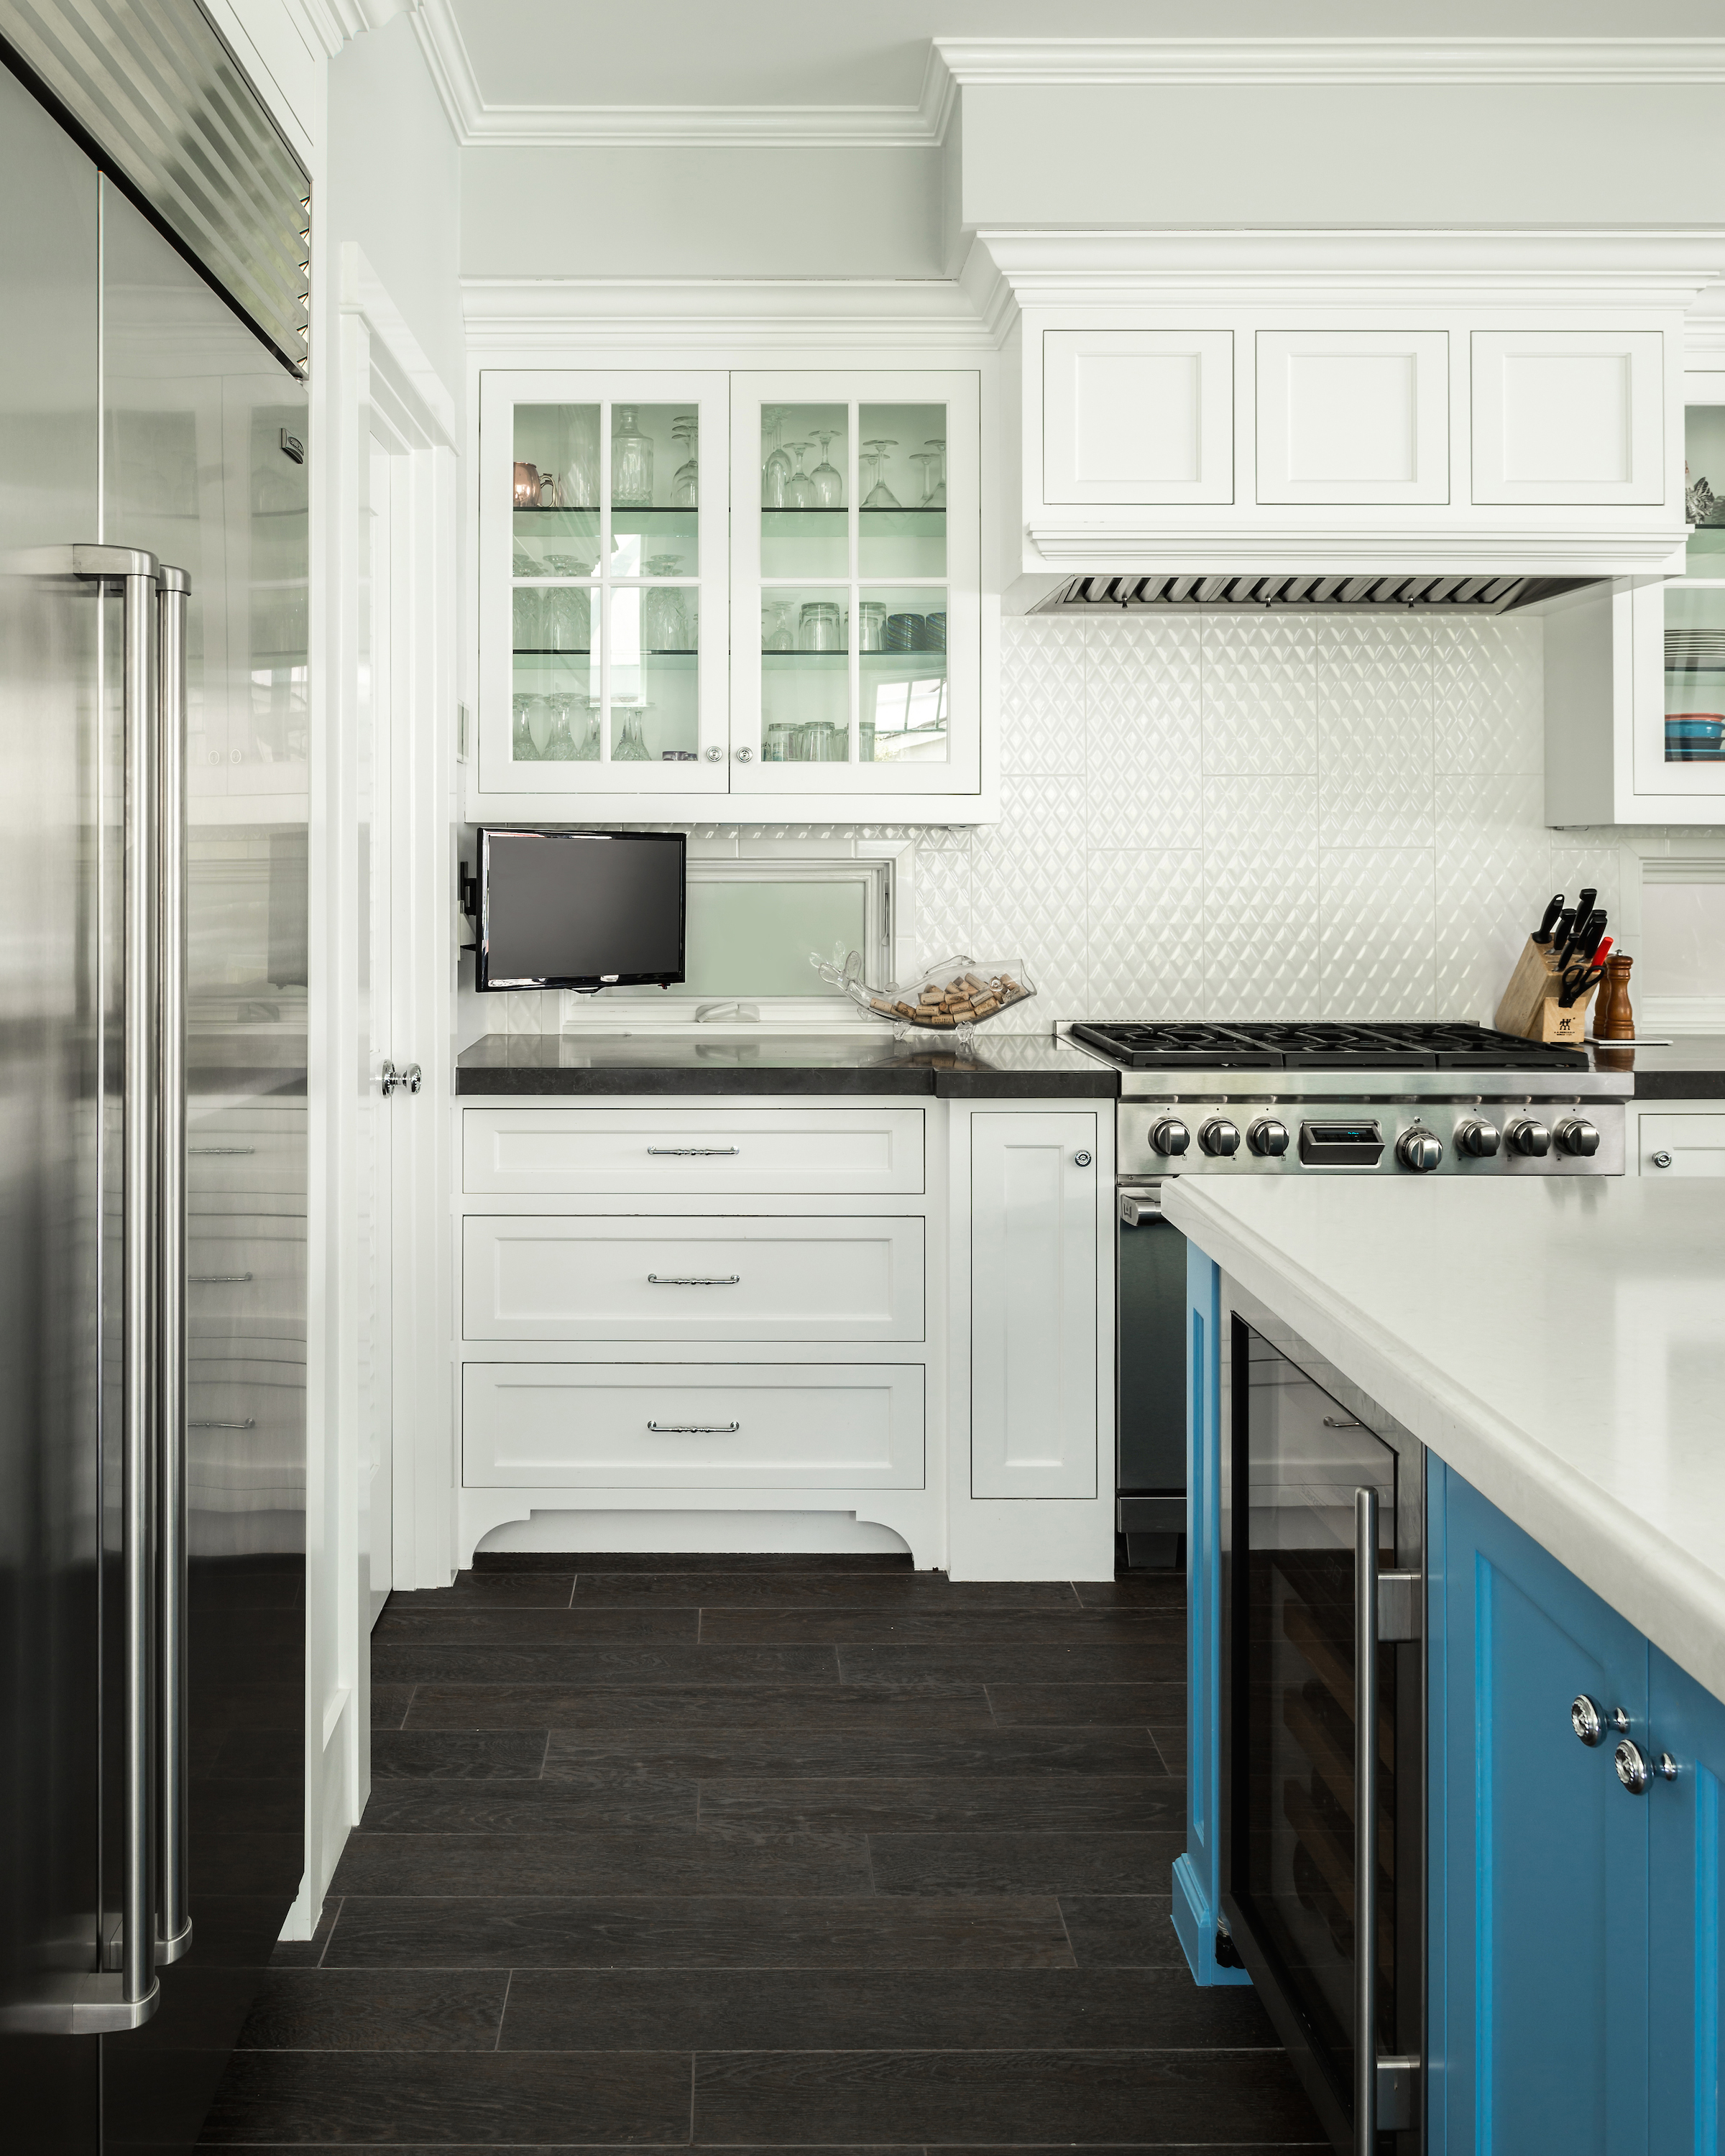 Newport-Beach-Home-Kitchen.jpg